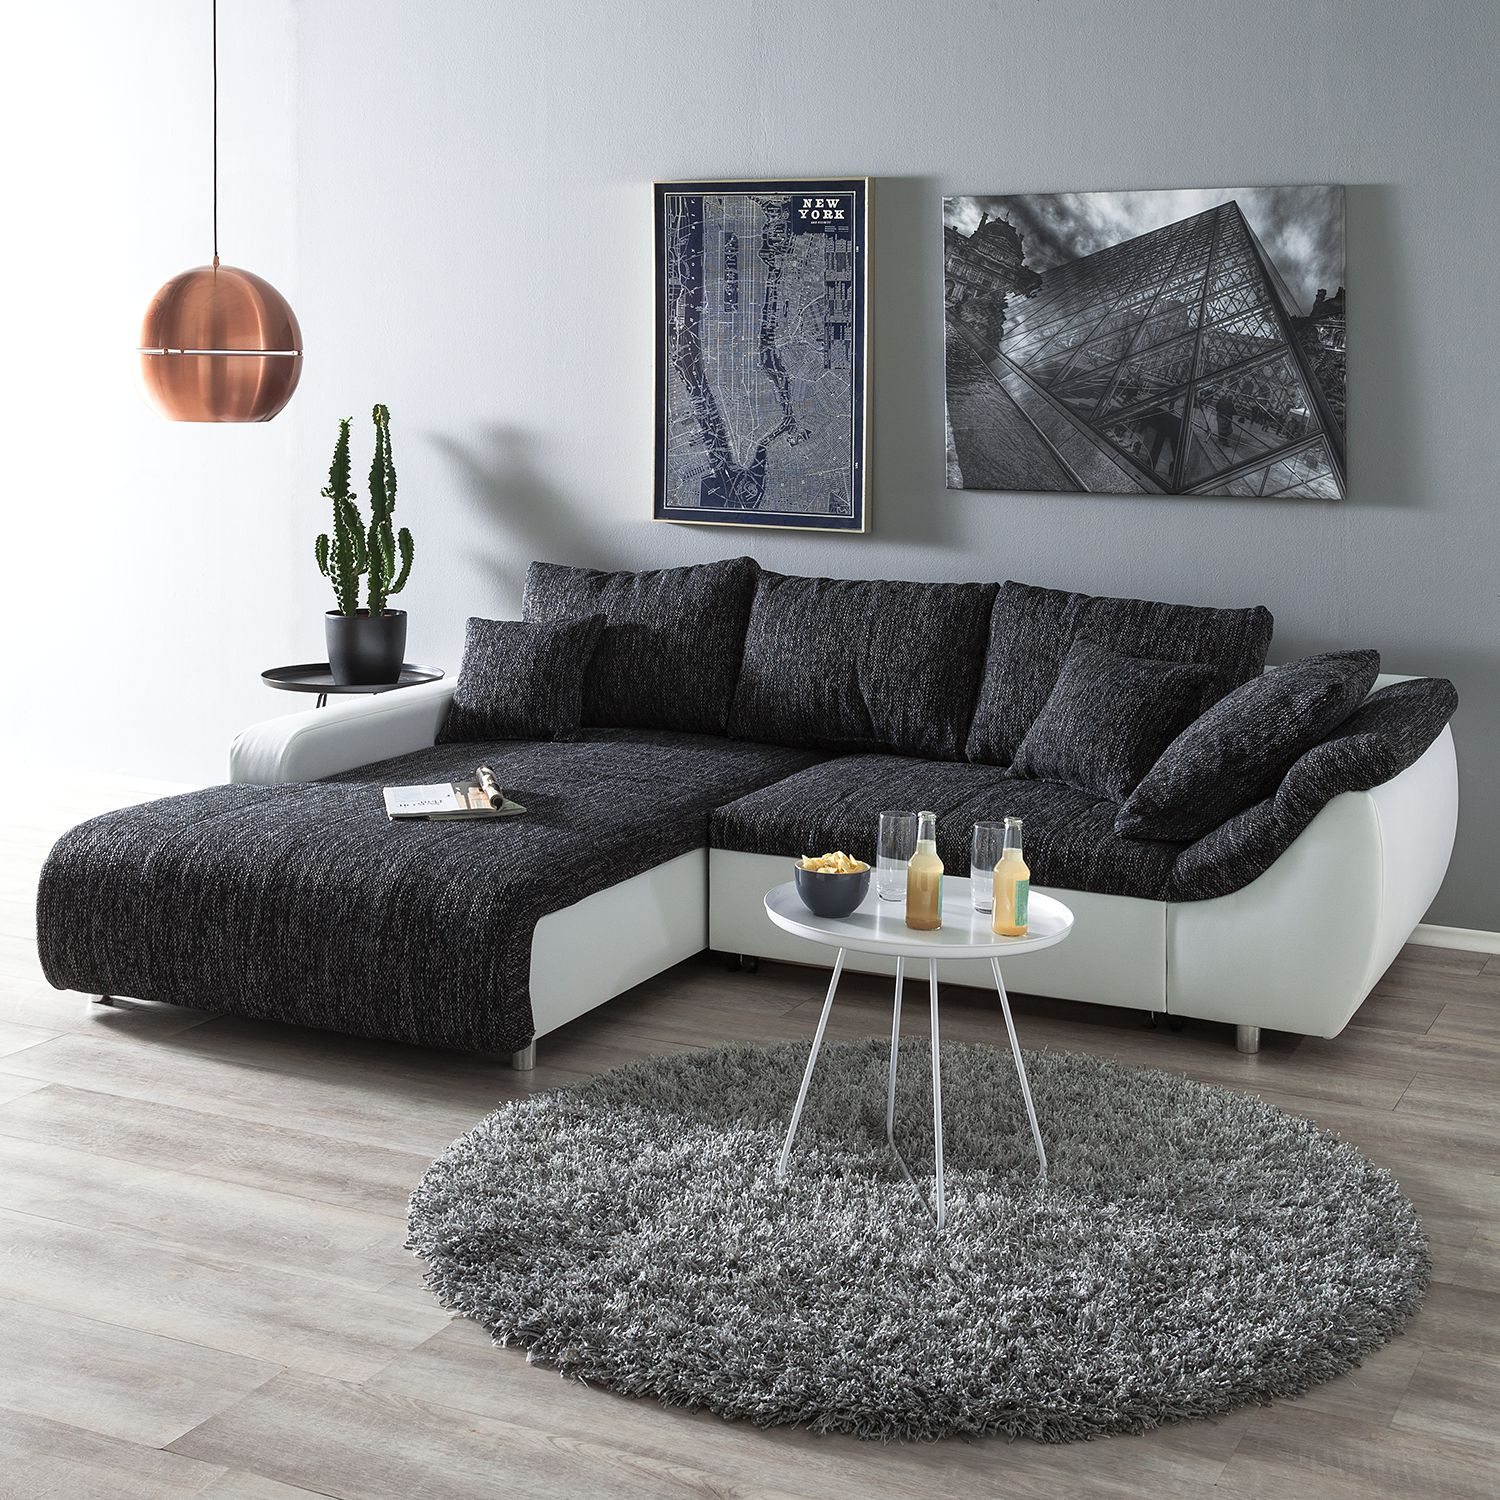 10 sparen ecksofa mable in grau wei nur 899 99 cherry m bel home24. Black Bedroom Furniture Sets. Home Design Ideas